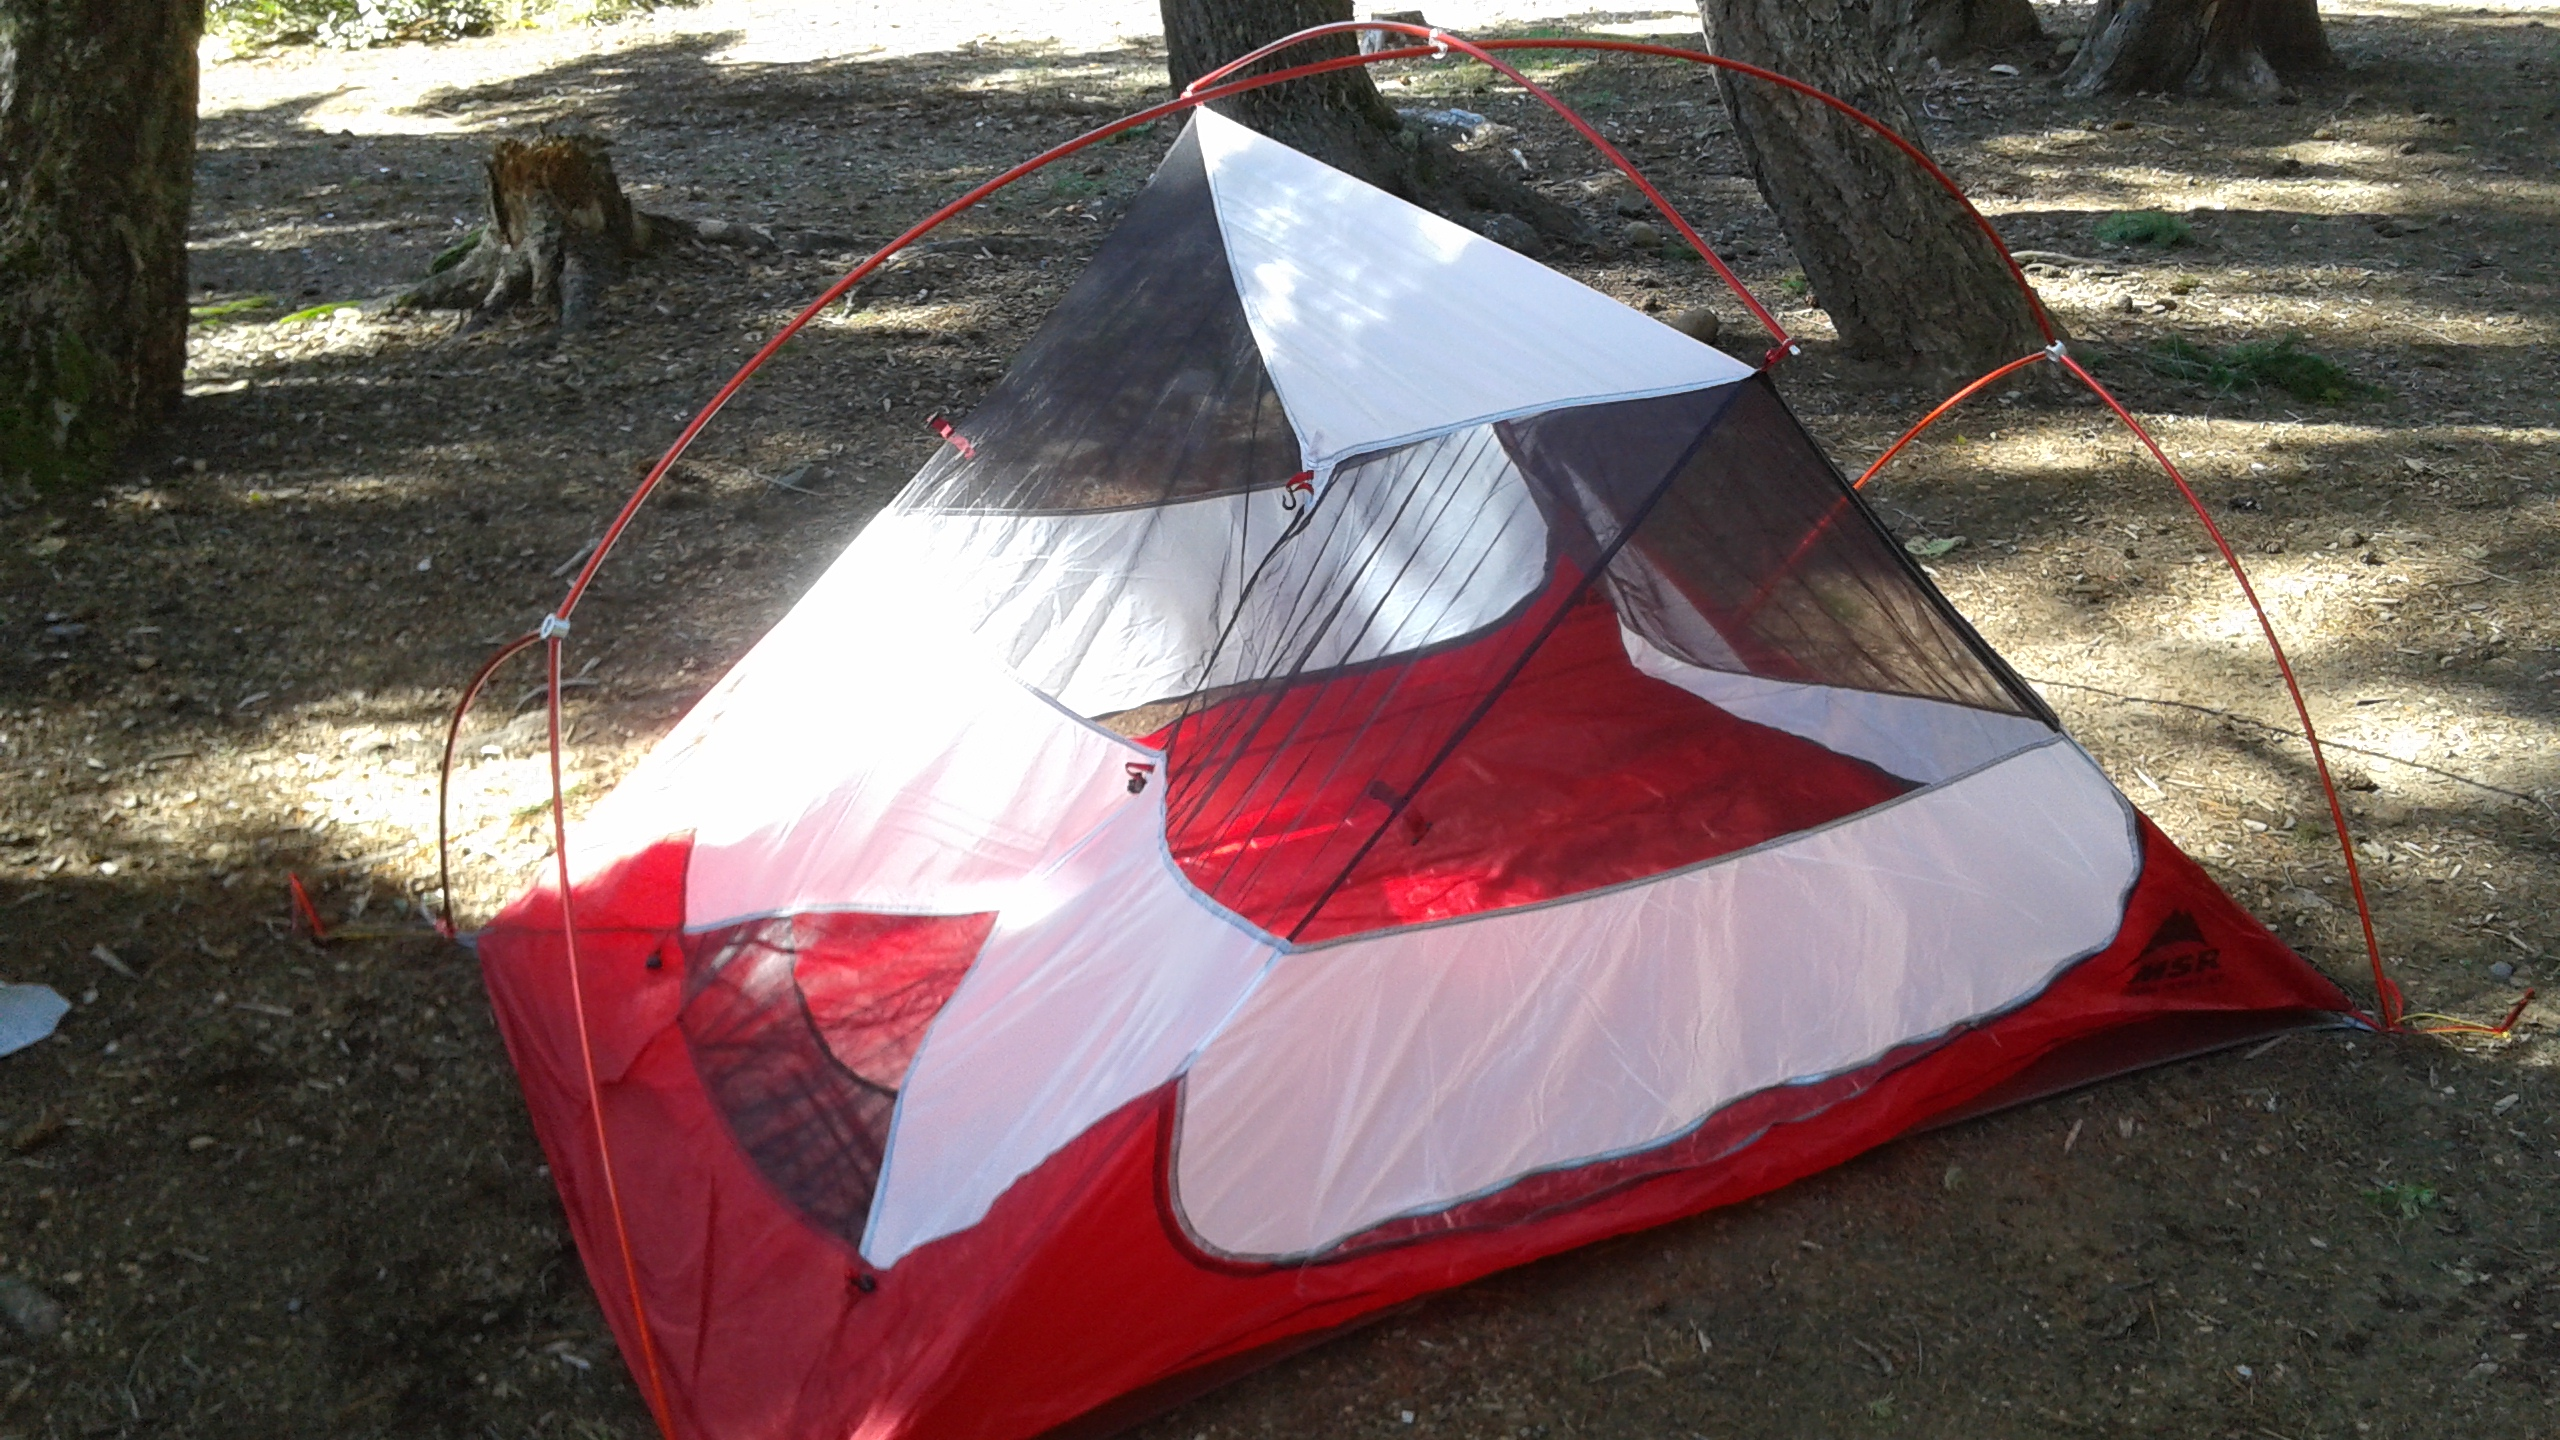 msr hubba hubba nx & msr hubba hubba review | Cabin Fever Chronicles - Getting Outdoors ...